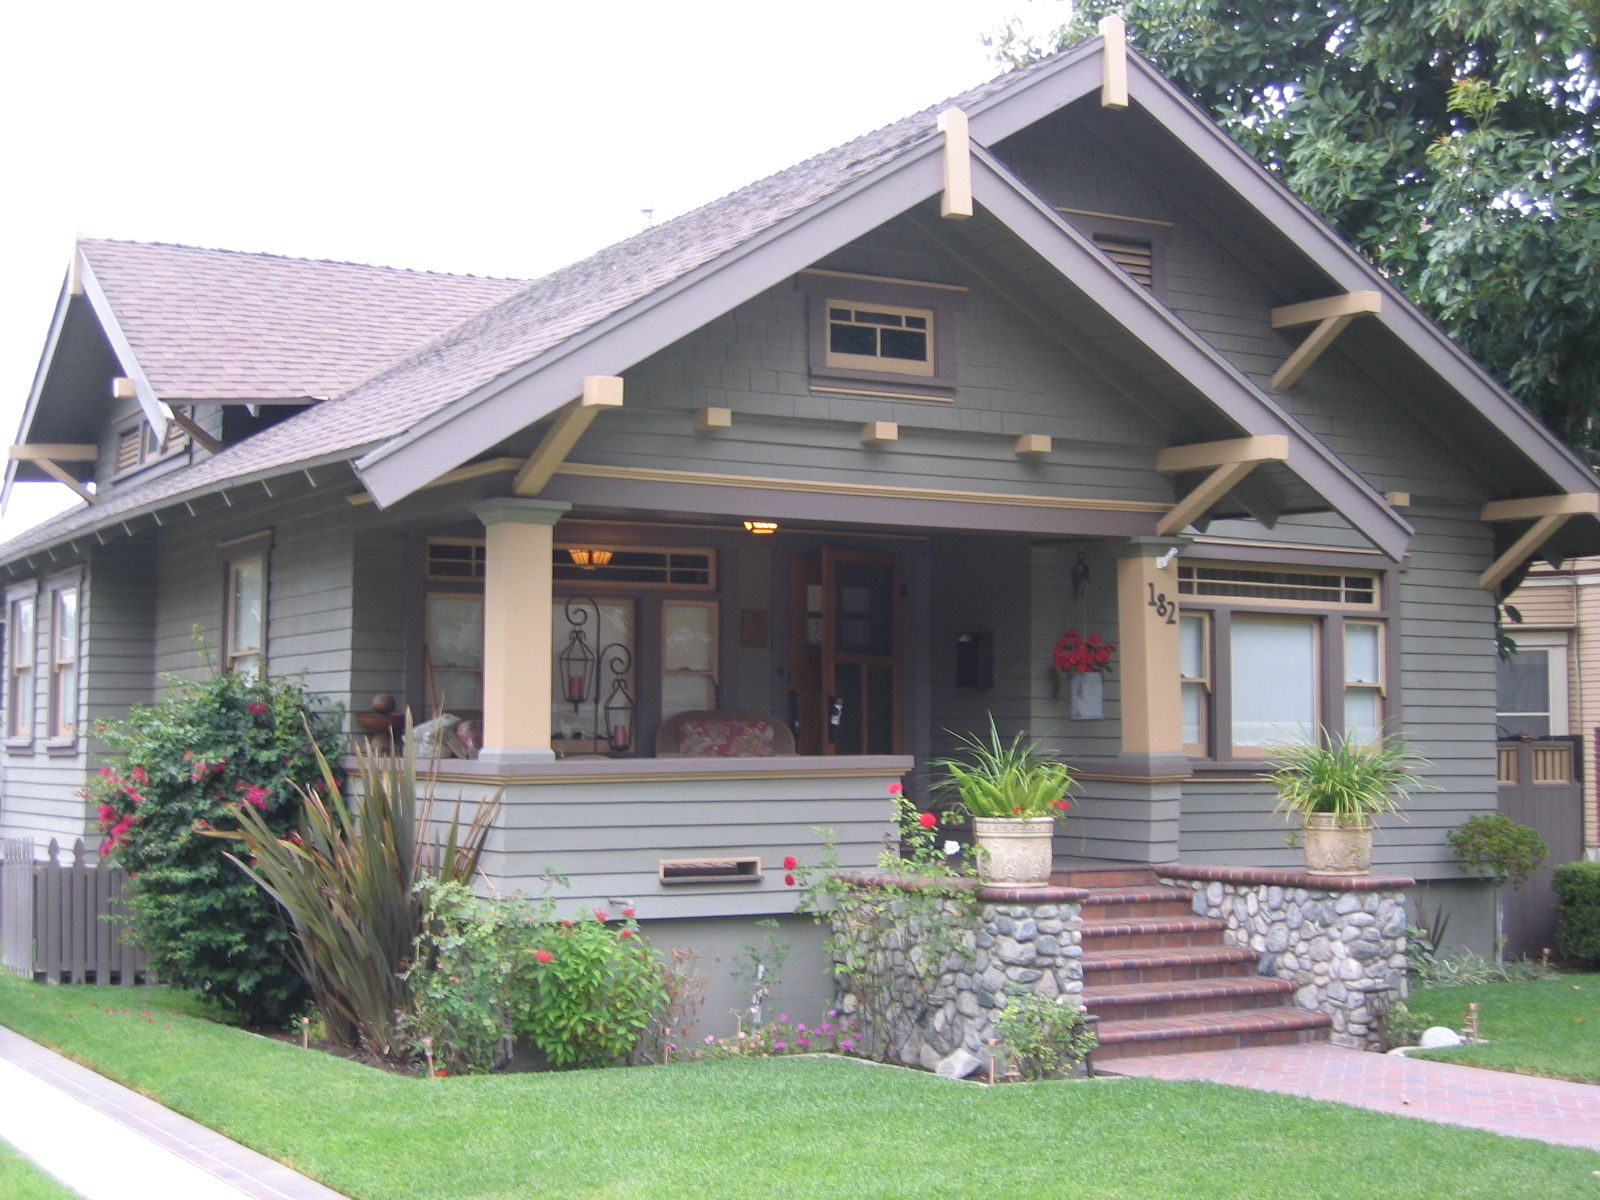 craftsman house pictures  Craftsman Home Style  Sight Words in 2019  Craftsman style homes